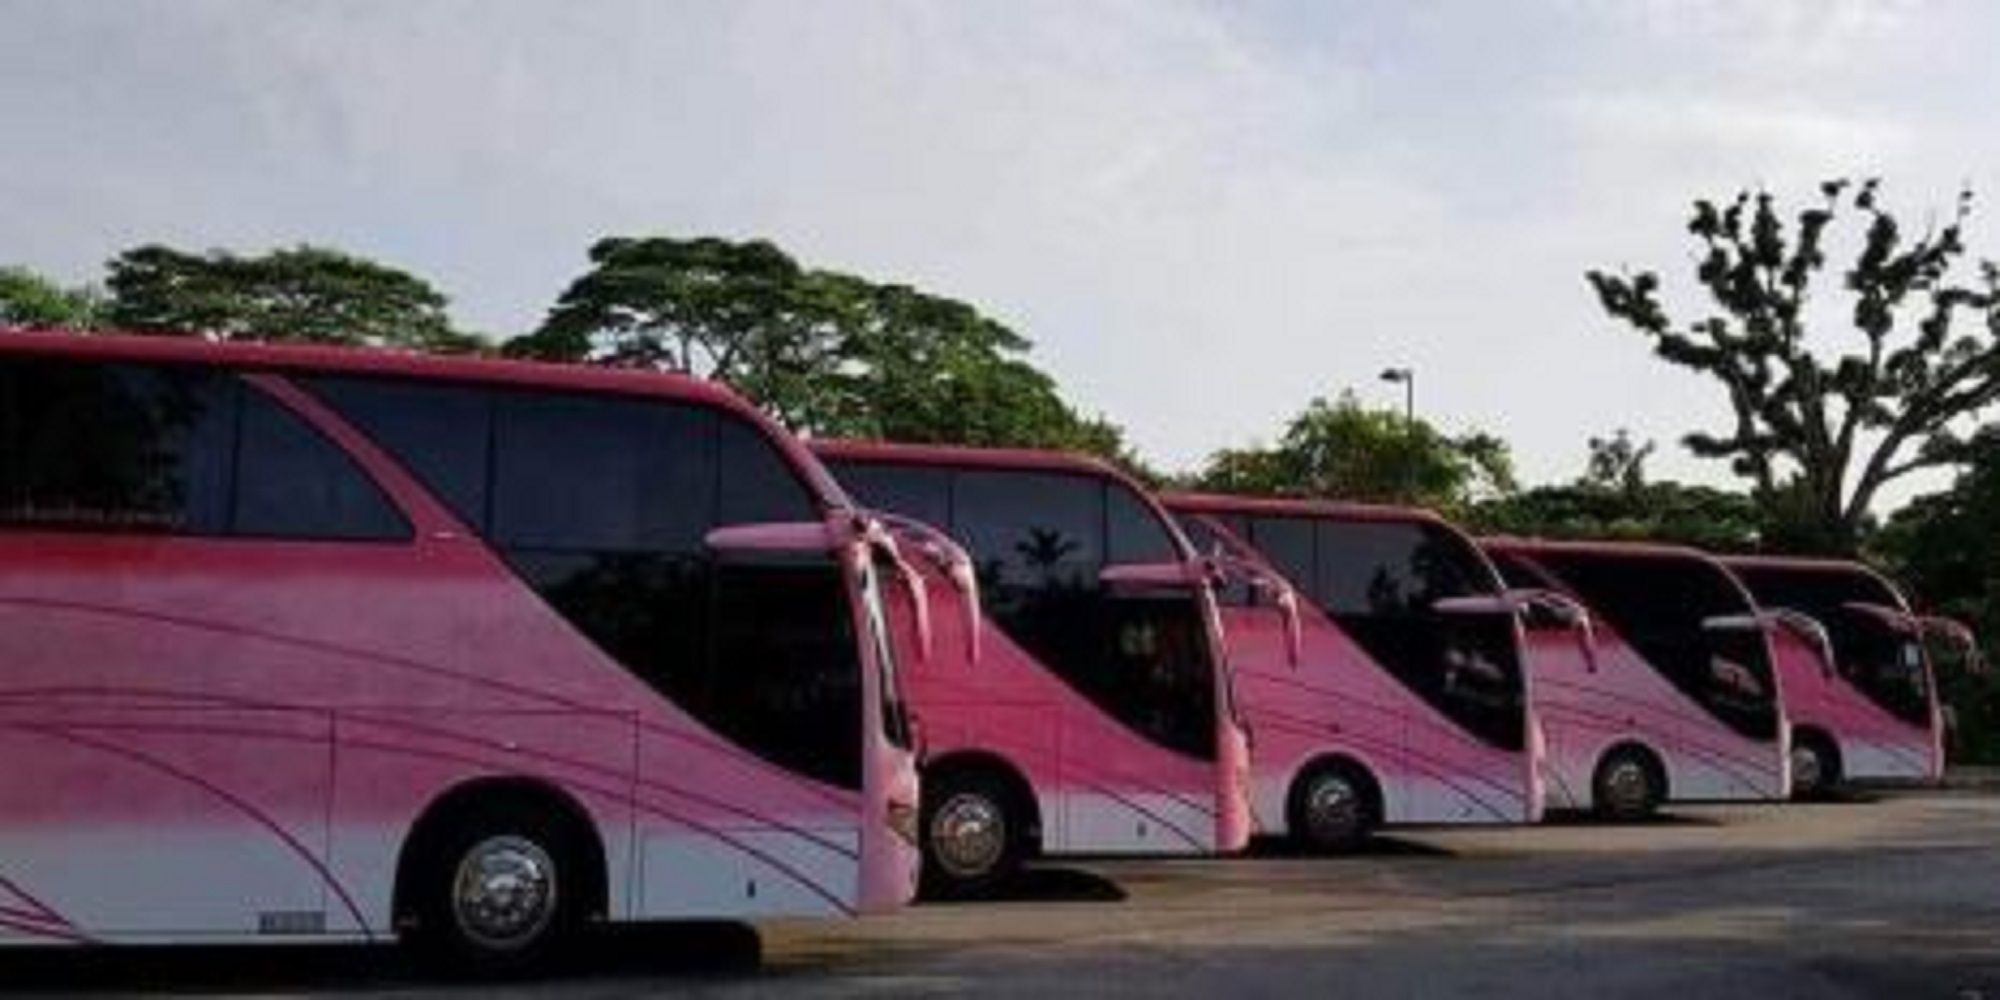 Chanbus provides top quality services like shuttle bus